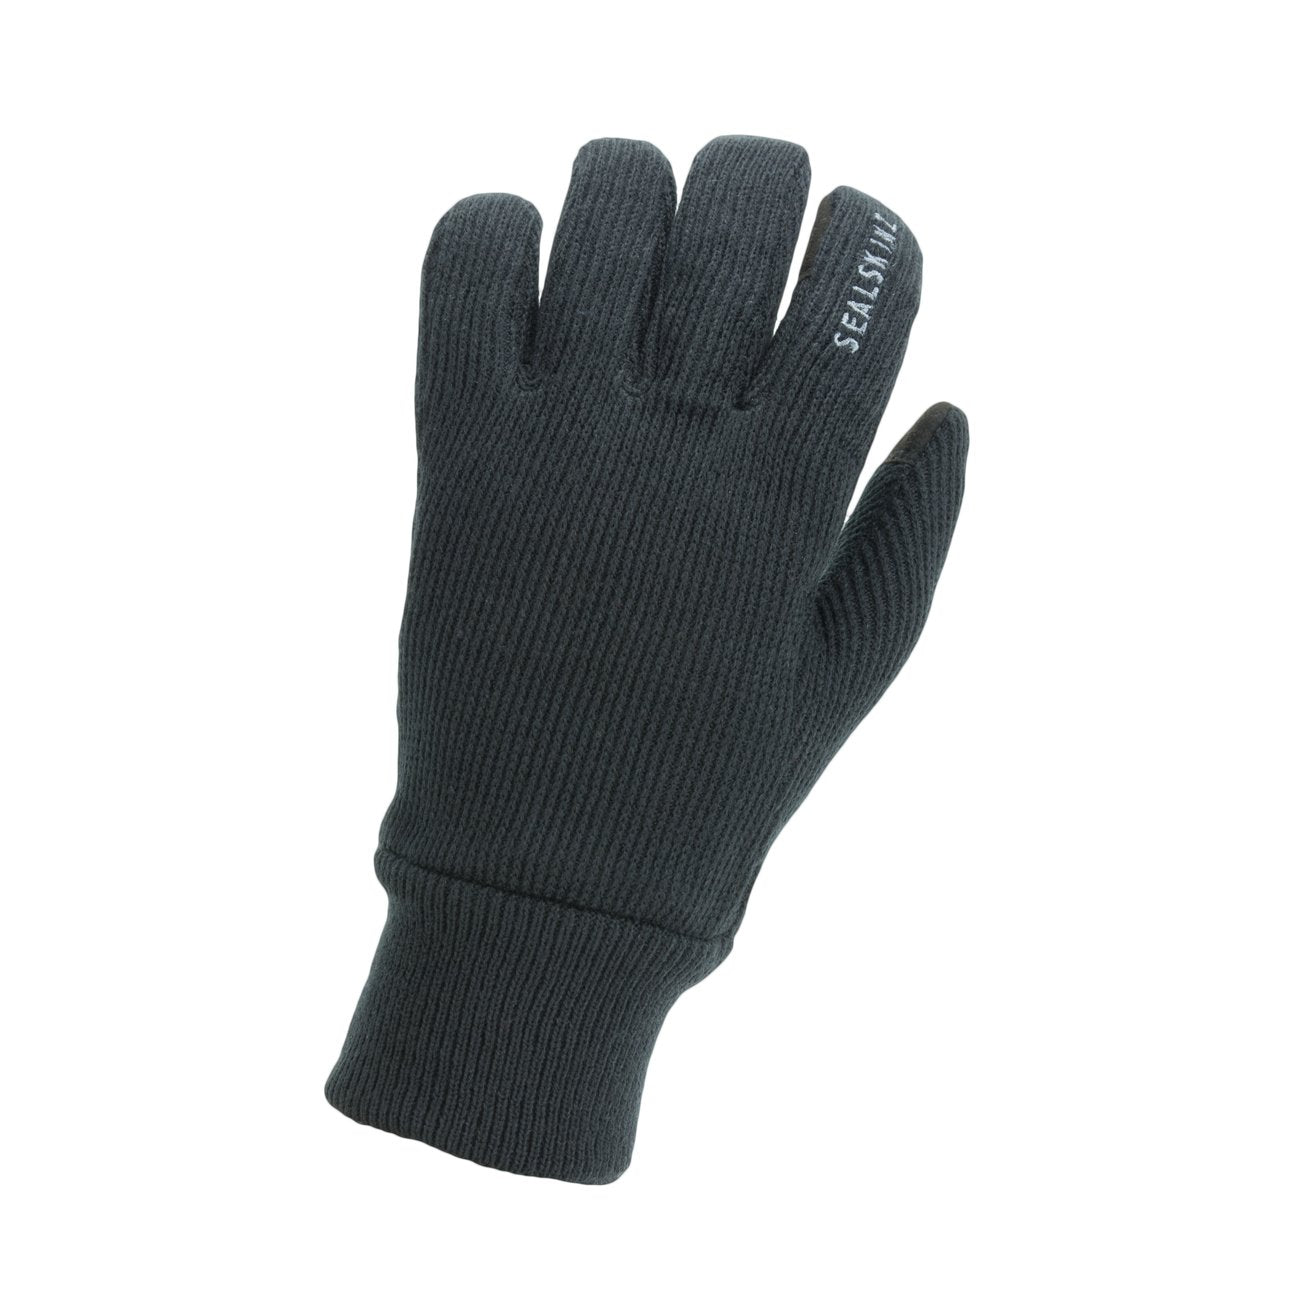 windproof-all-weather-knit-glove